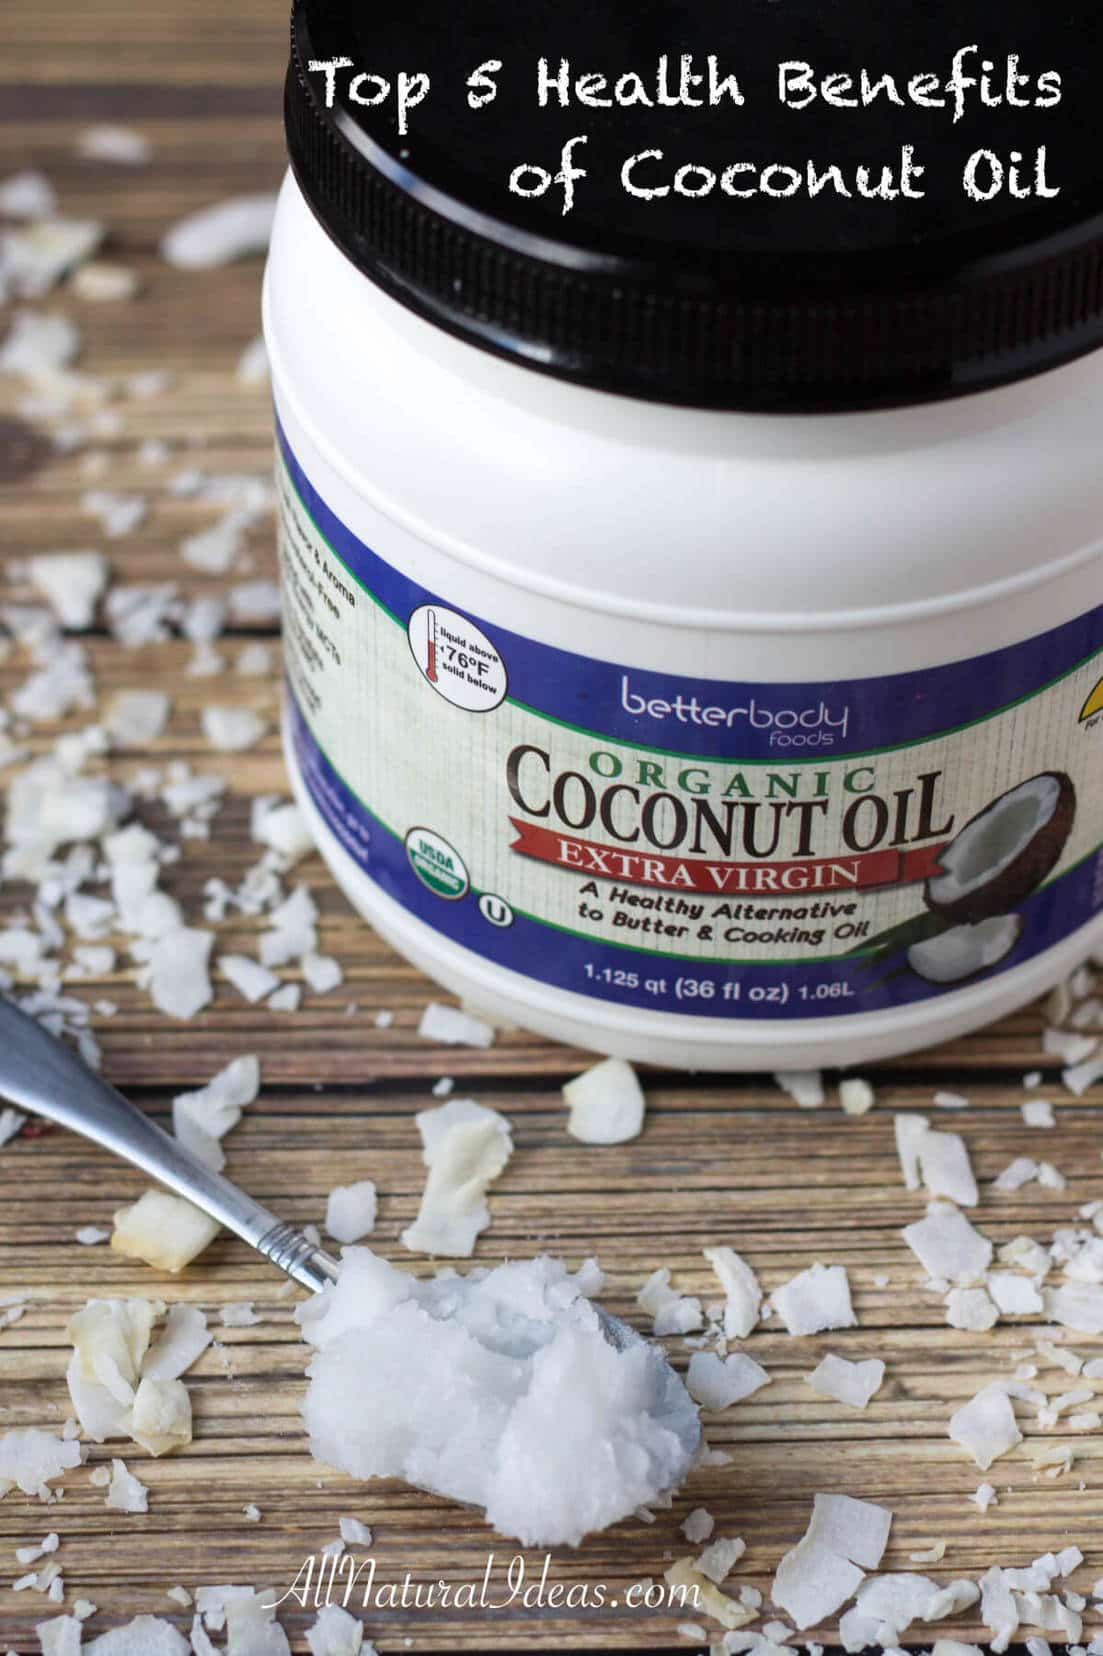 Top 5 Health Benefits of Coconut Oil